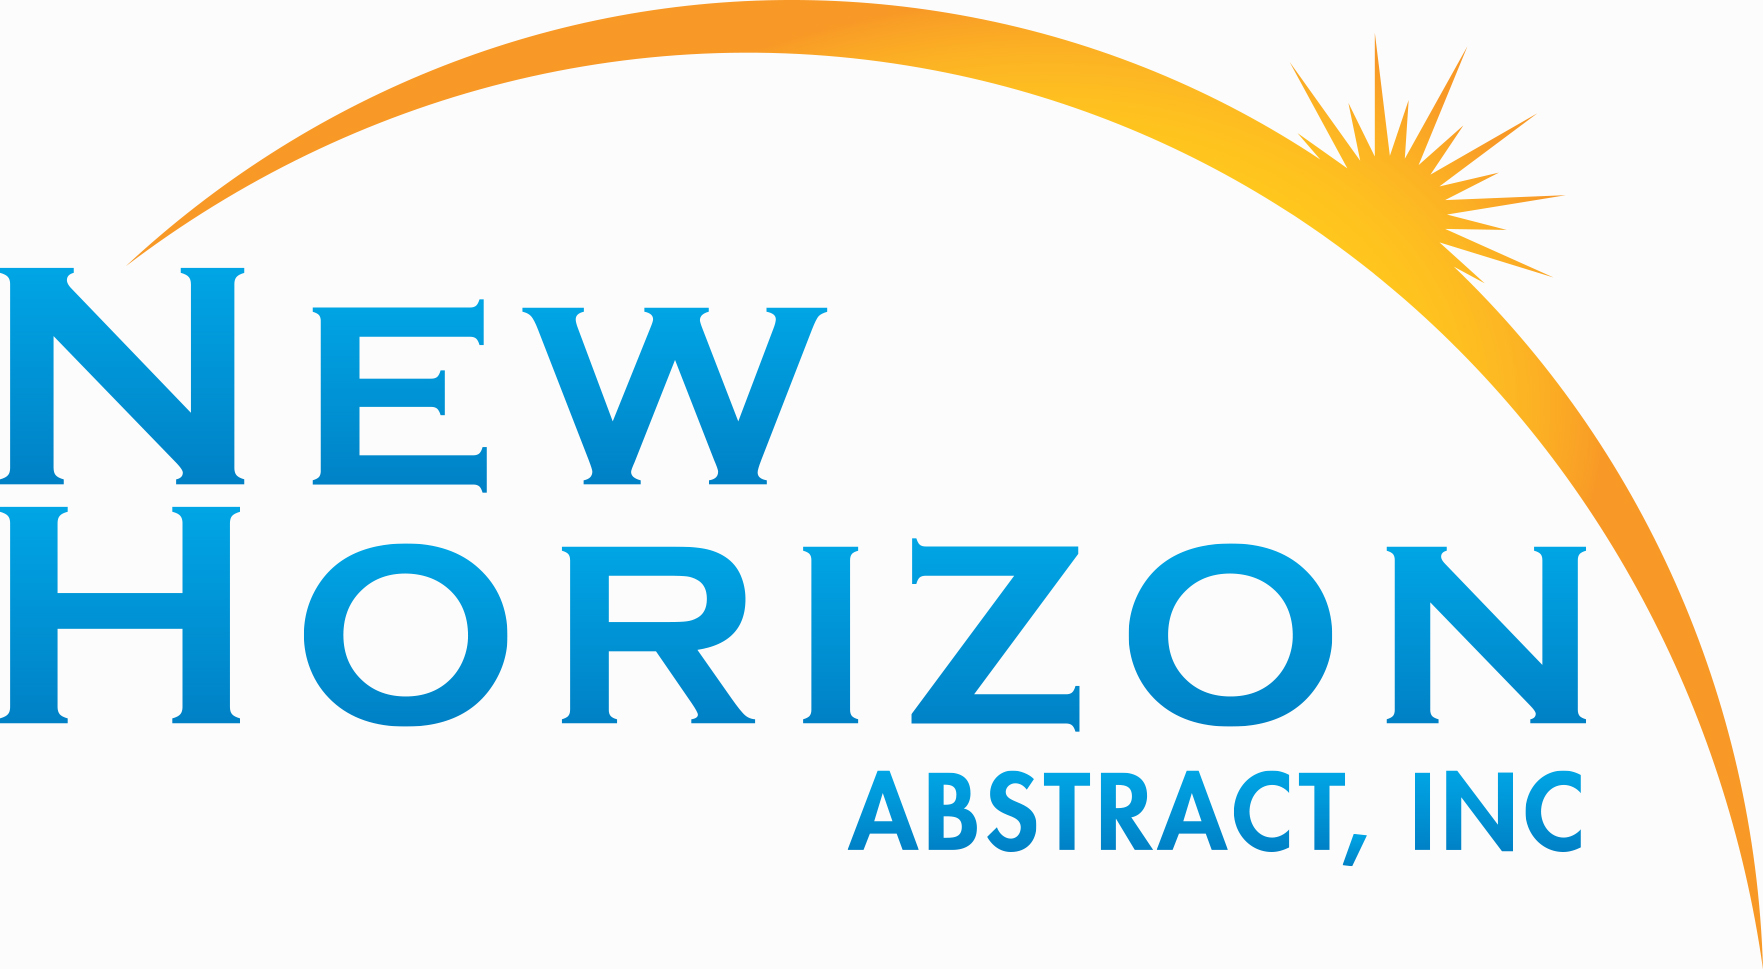 New Horizon Abstract, Inc. - Title